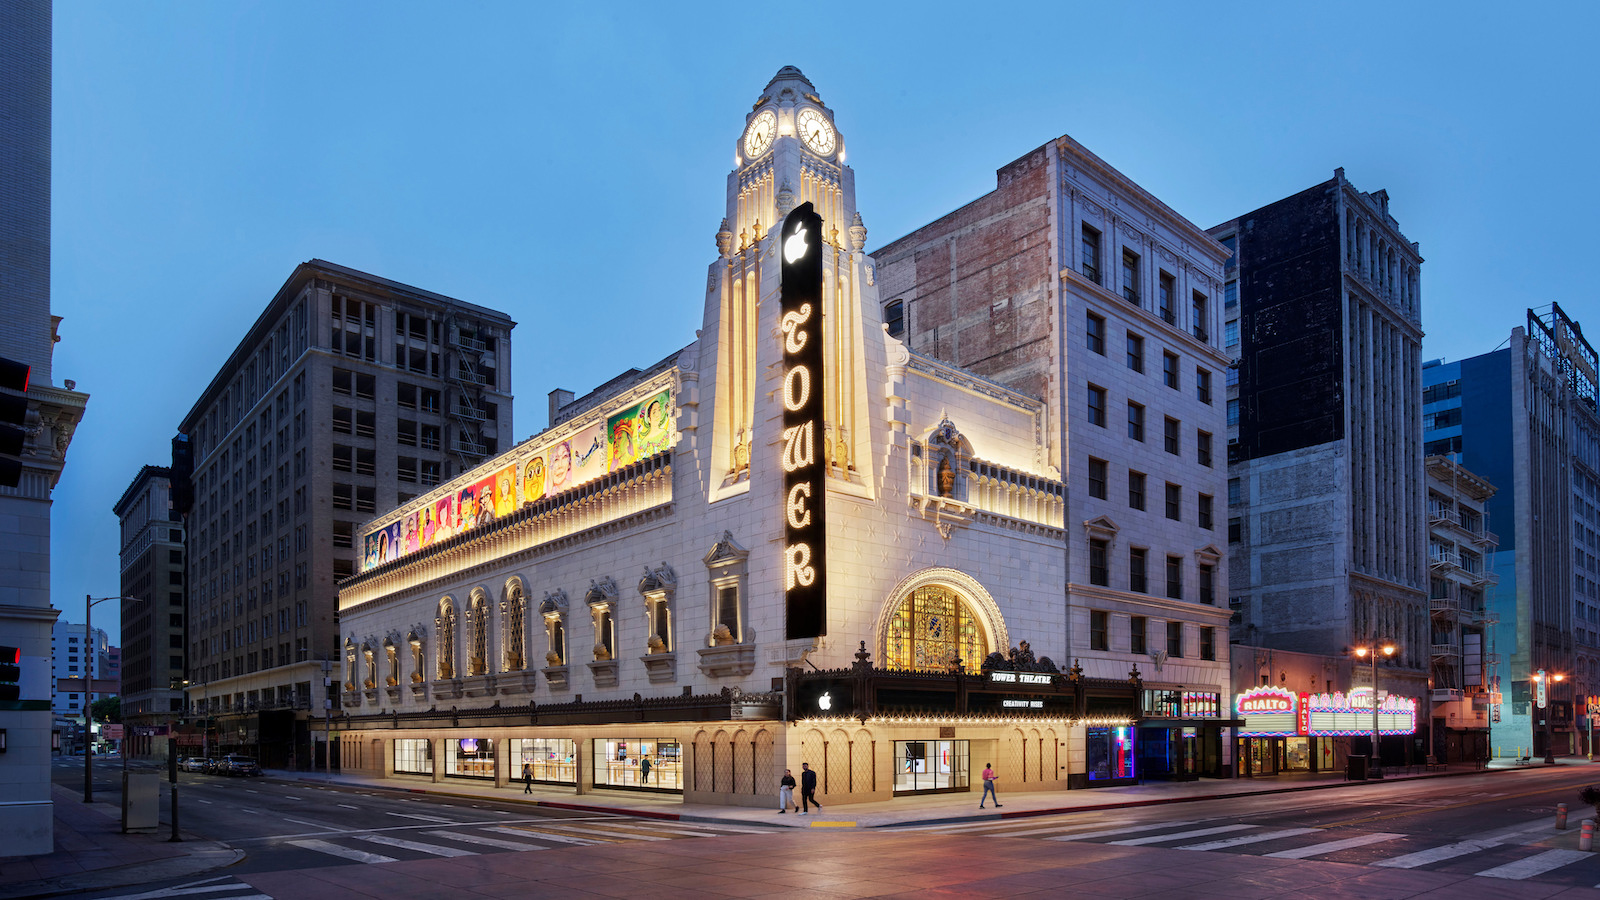 Apple nso tower theater la street view 06222021